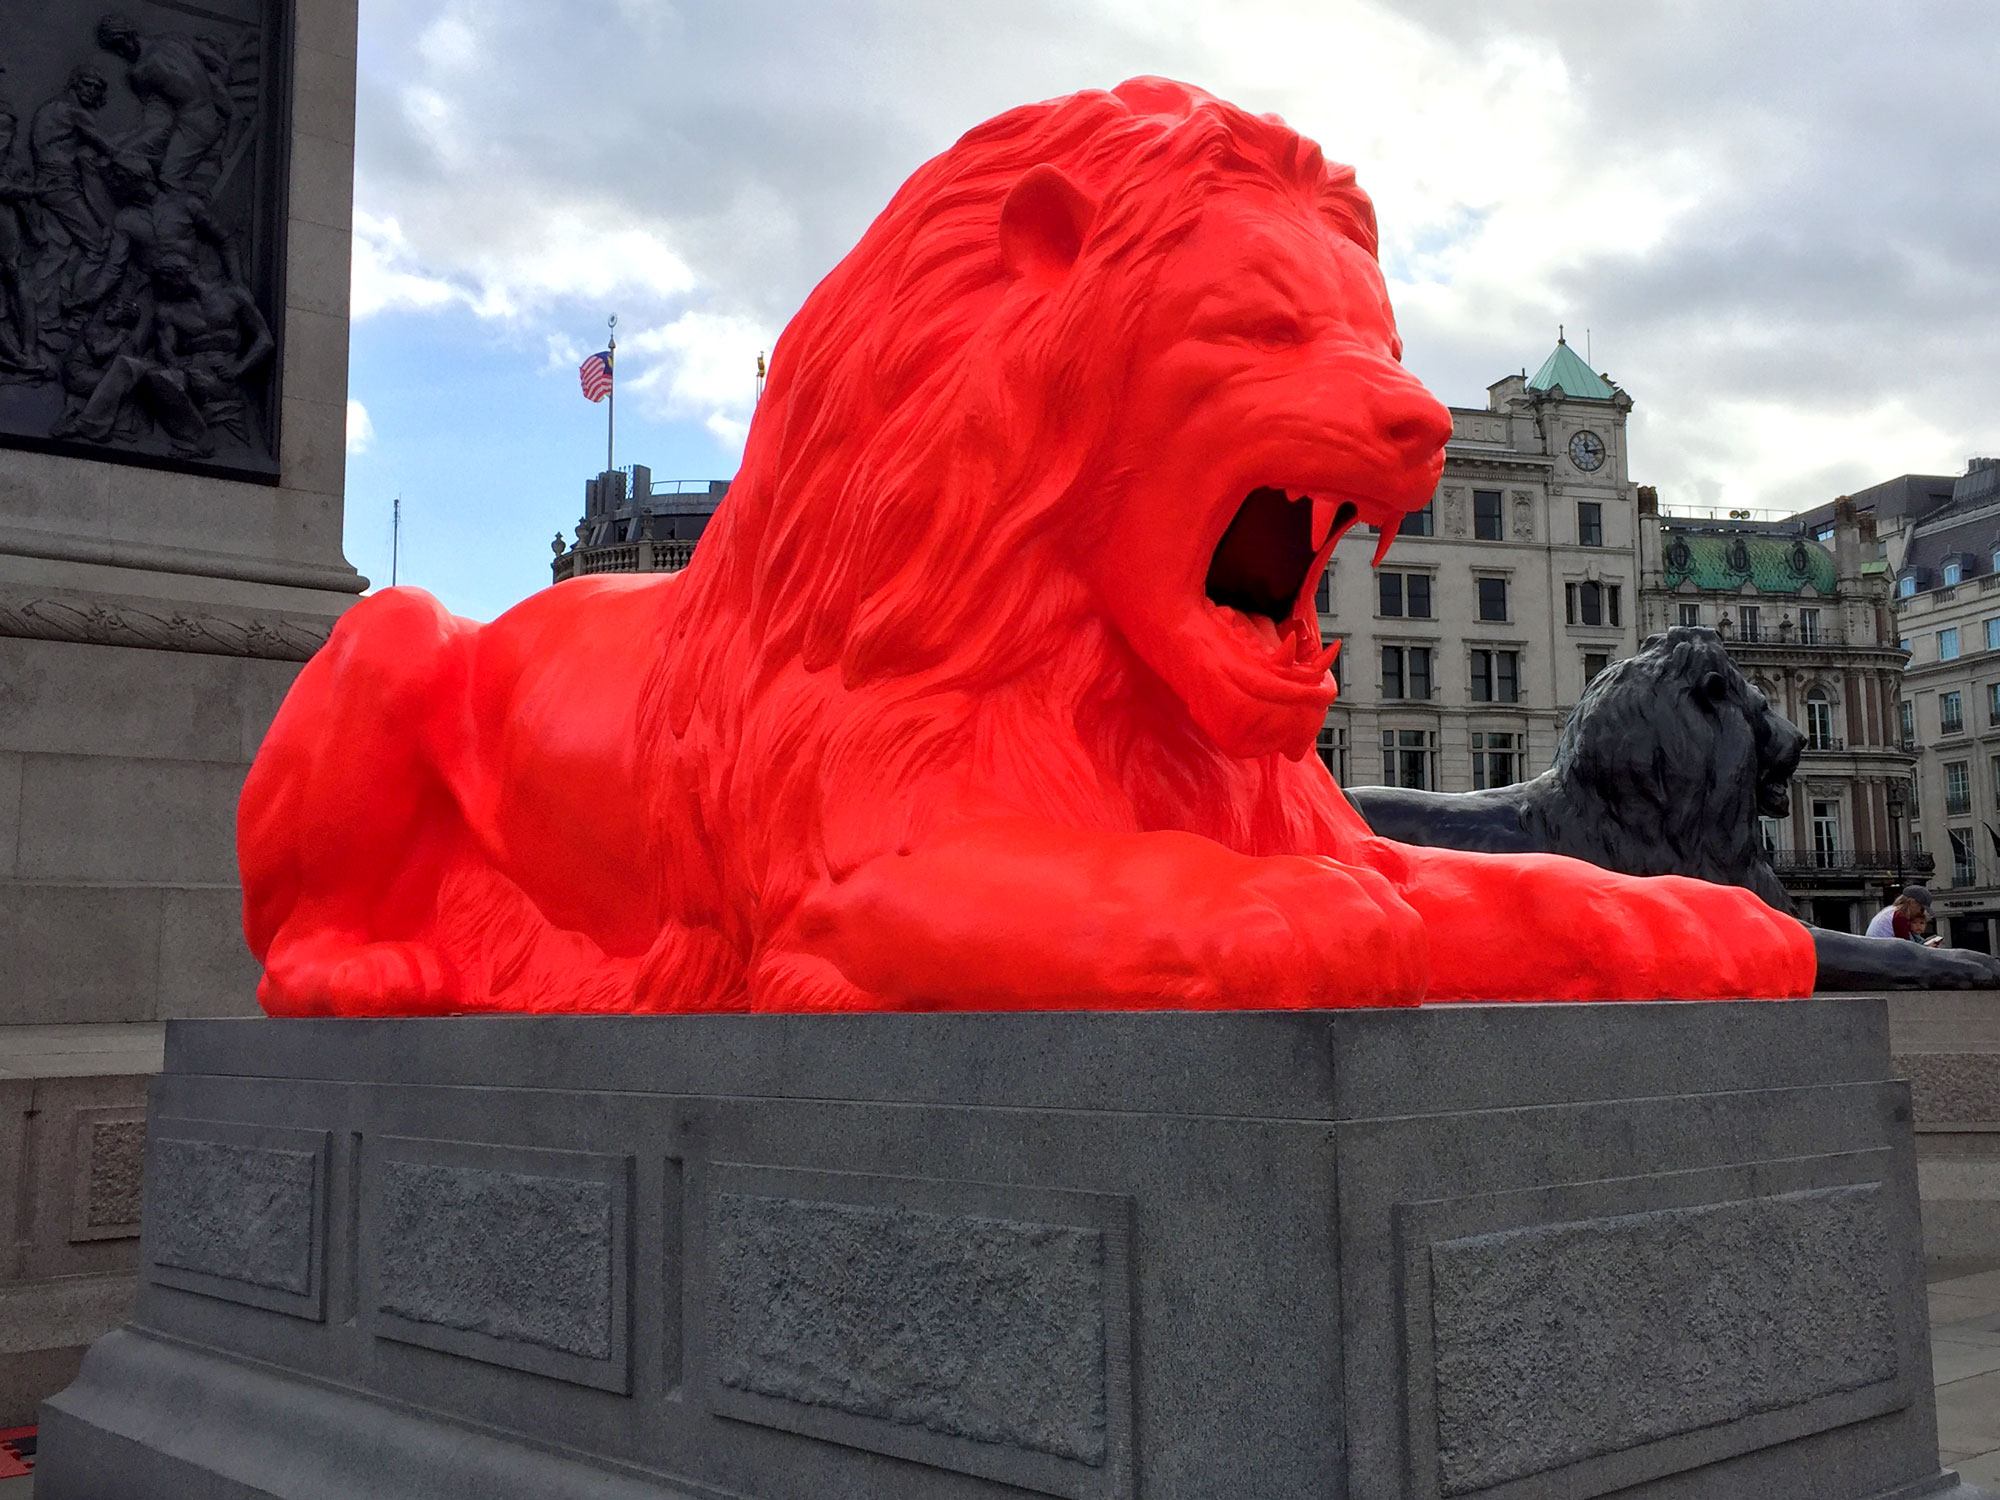 On a grey stone plinth sits a reclining line sculpture, painted in fluorescent red paint. Behind it a similar black lion and behind that is a London skyline.